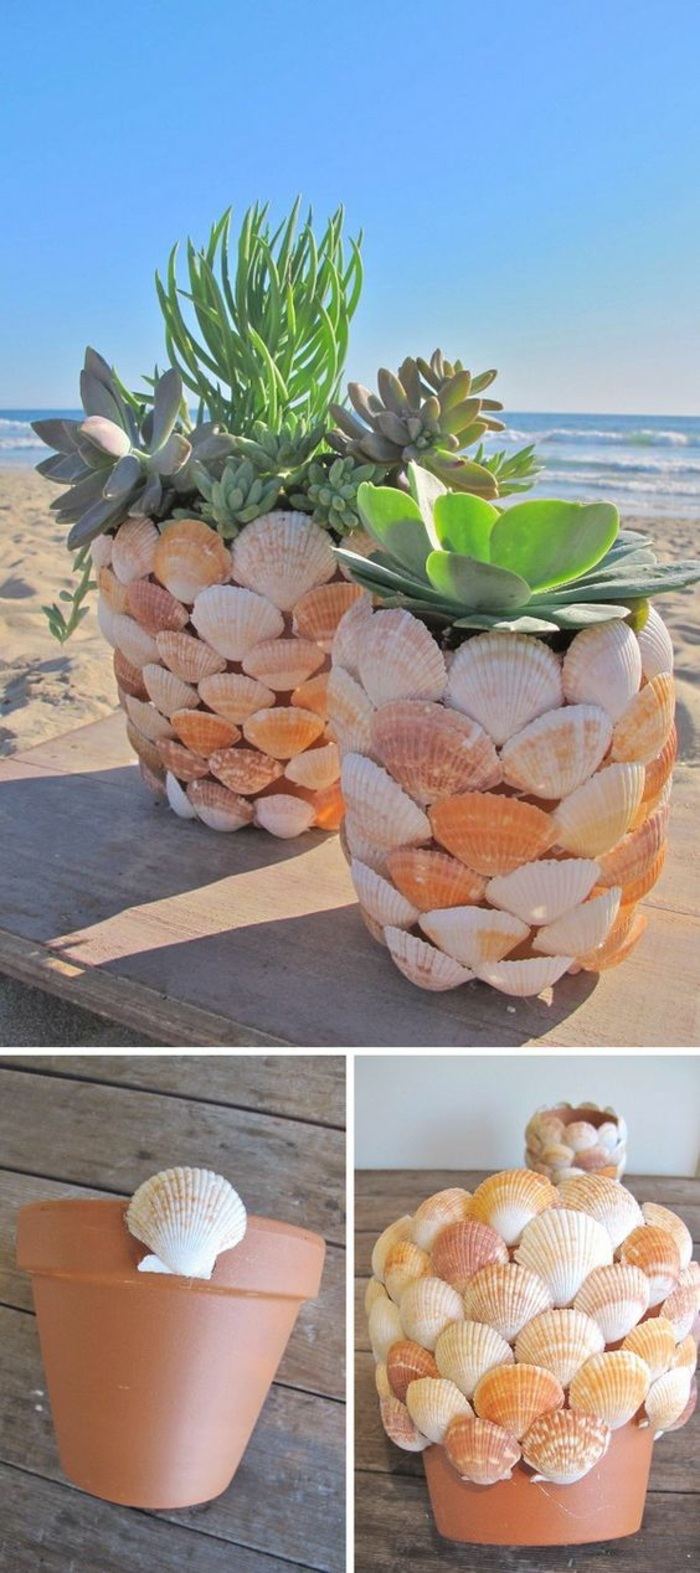 fun easy crafts, ceramic pot, covered in seashells, potted succulents, wooden table